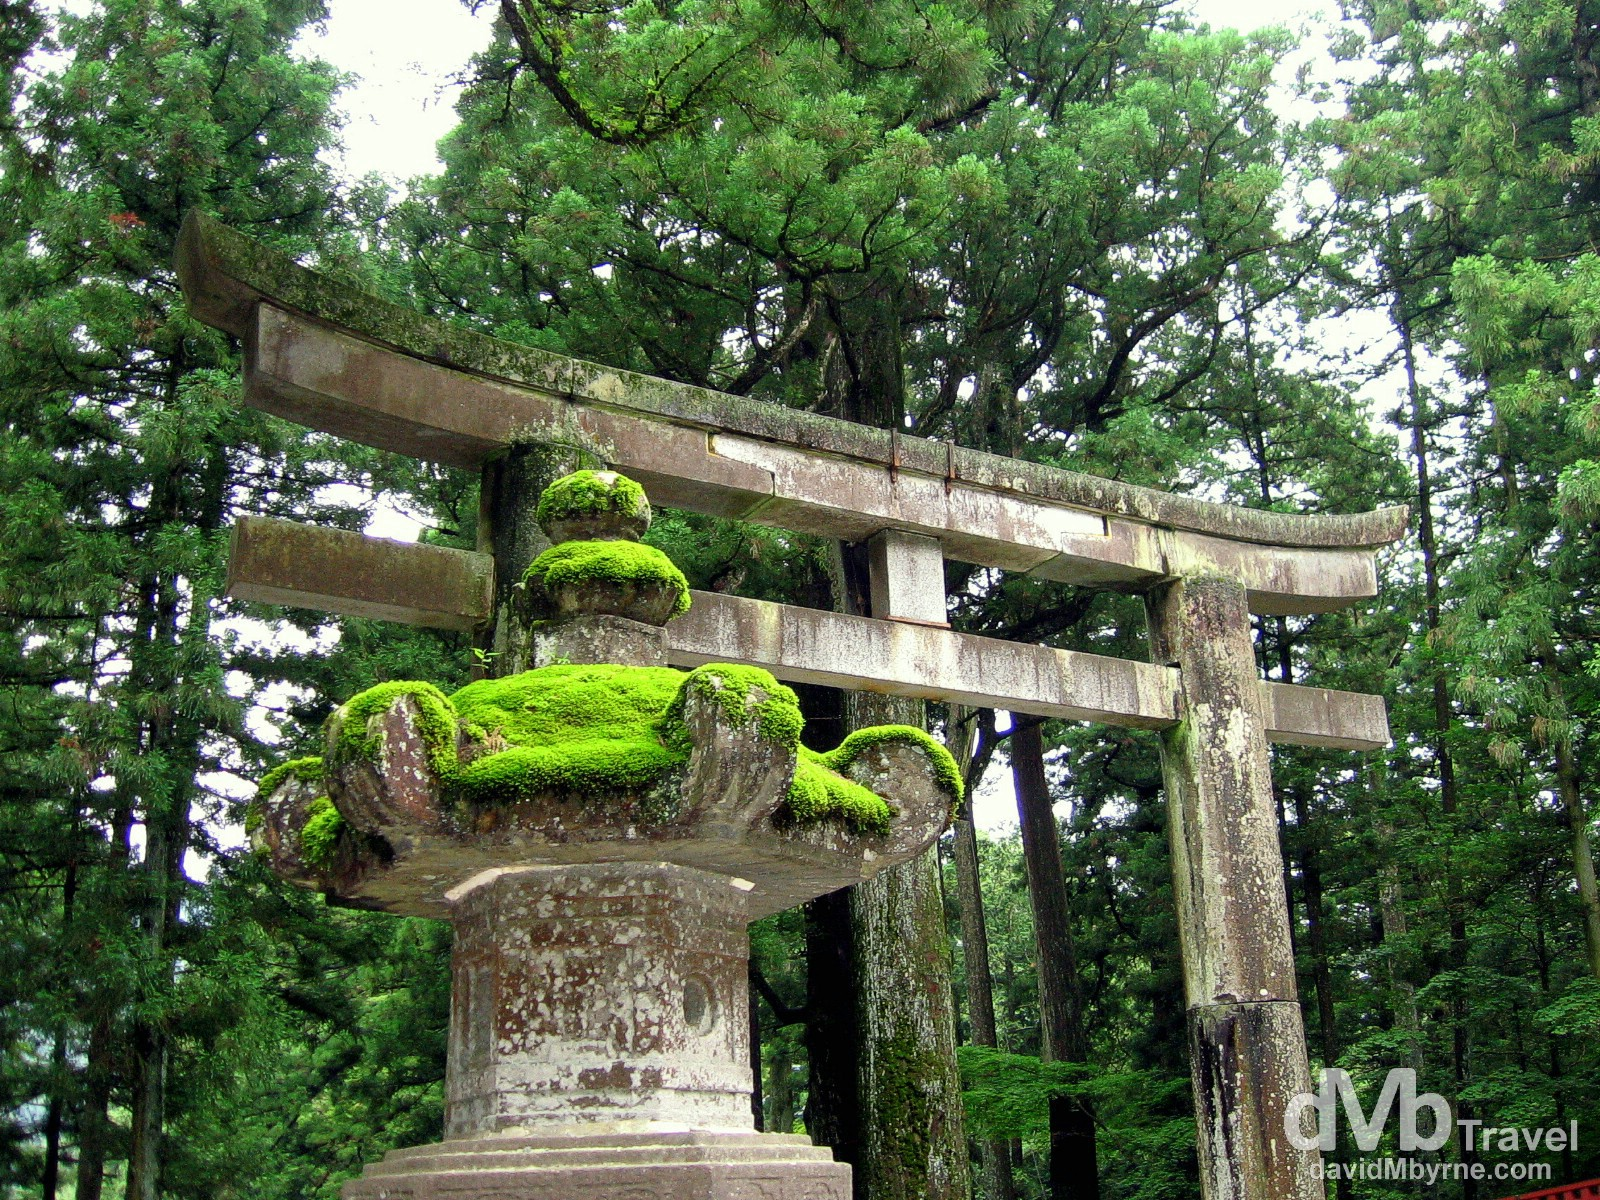 The torii gate at the entrance to the Toshogu Shinto shrine in Nikko, Honshu, Japan. July 17th 2005.